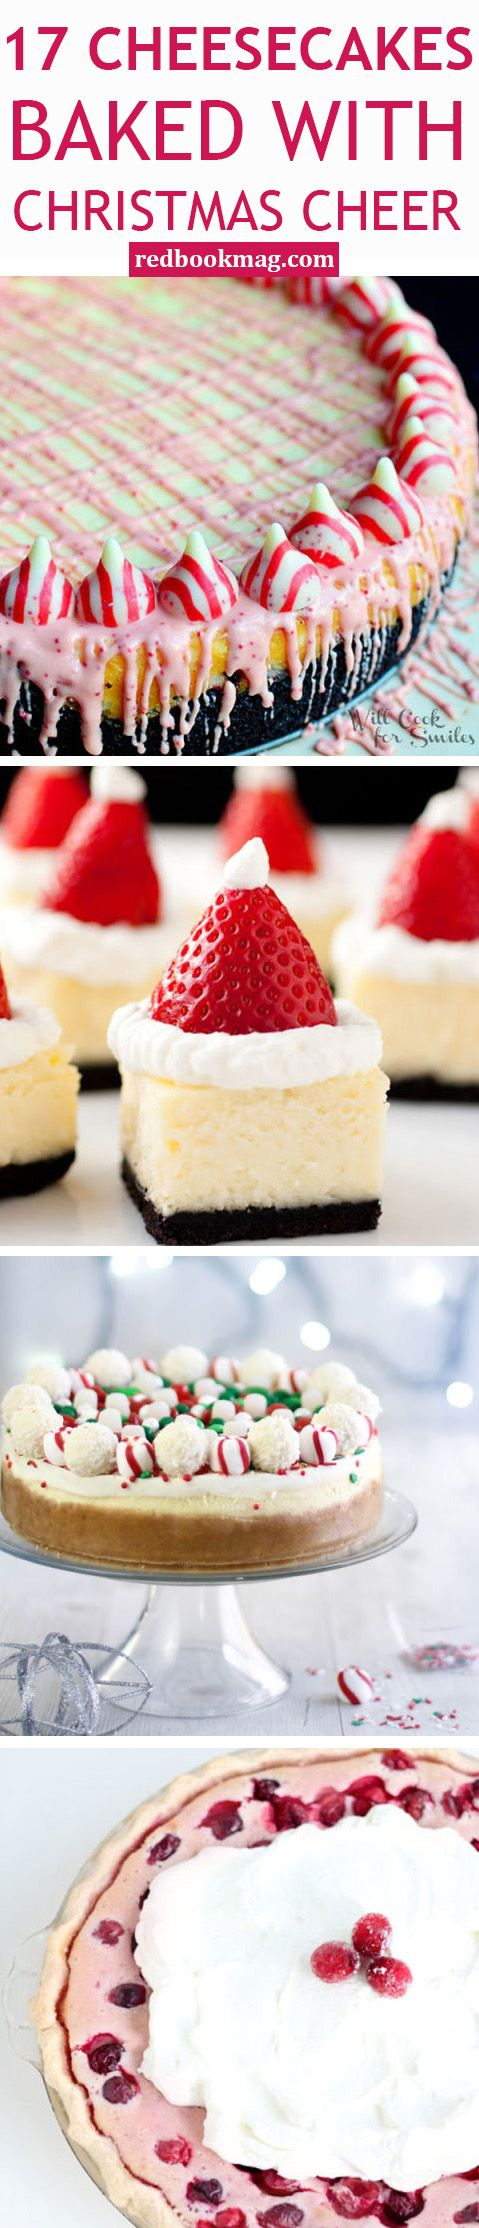 CHRISTMAS CHEESECAKE RECIPES: These luscious, creamy cakes (and mini cakes, too!) are the perfect way to indulge this holiday season. Here you'll find easy and delicious recipes for Christmas Candy Cheesecake, Eggnog Cheesecake Truffles, Cranberry Cheesecake Pie, and more! Use these holiday recipes for family dinners, festive holiday meals, and all your holiday get-togethers!